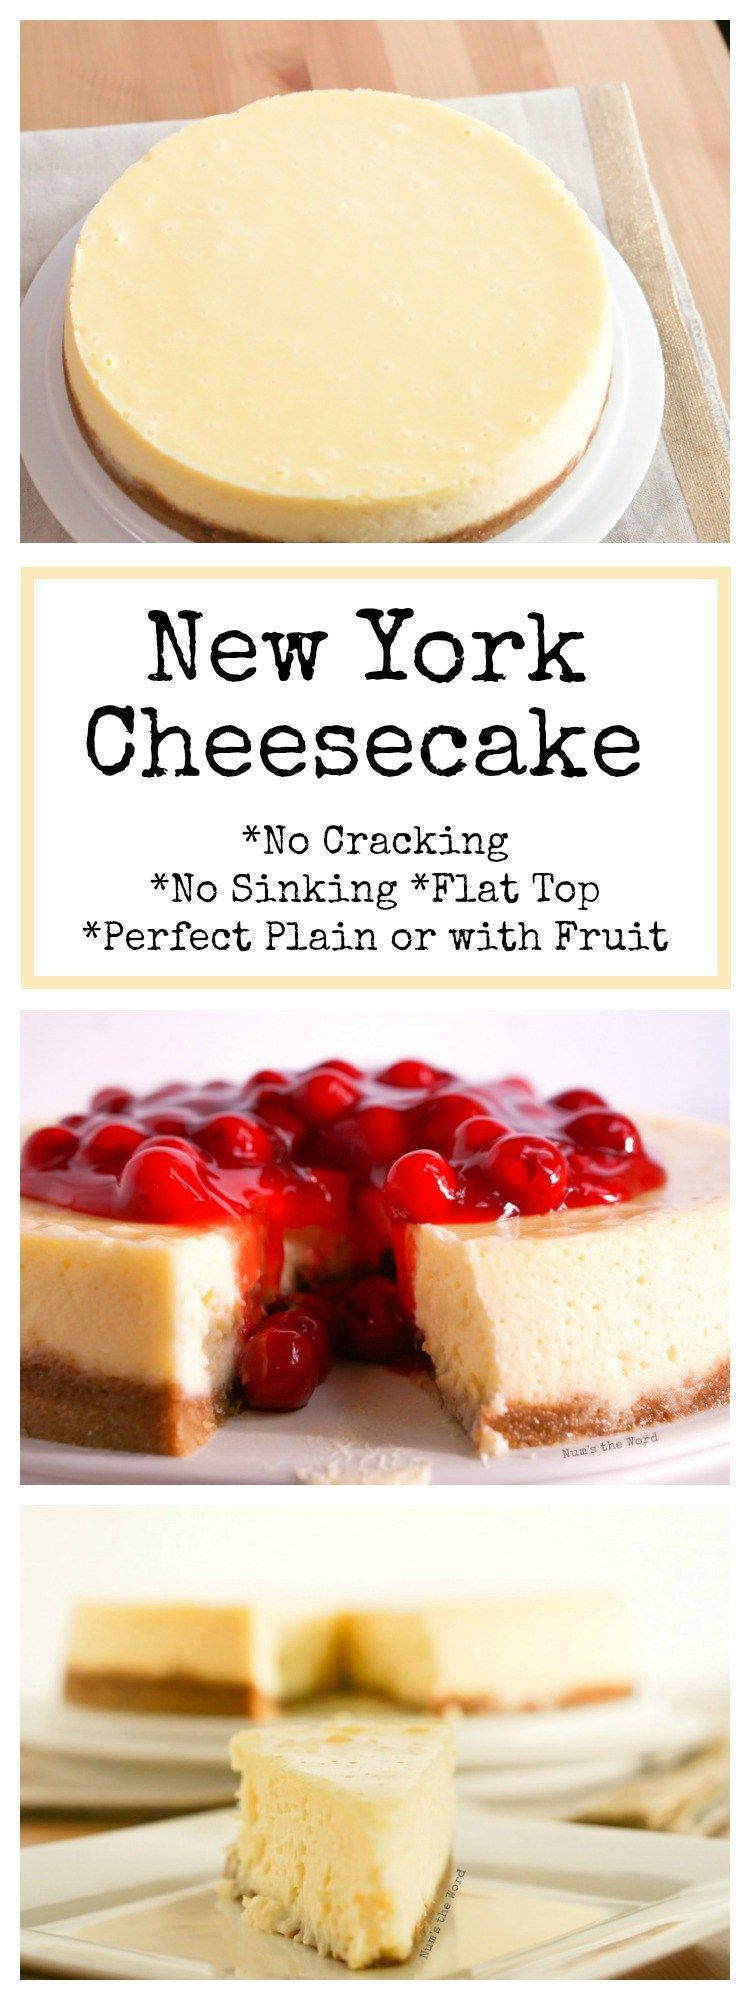 This New York Cheesecake is the best I've ever had! No cracking, no sinking top, no thick brown crust. A perfectly flat cheesecake that is tasty plain or with fruit! #dessert #cheesecake #newyork #newyorkcheesecake #cherrycheesecake #fruitcheesecake #plaincheesecake #nocracking #nosinking #flattop #nowaterbath #perfectcheesecake #recipe #numstheword #simplecheesecakerecipe